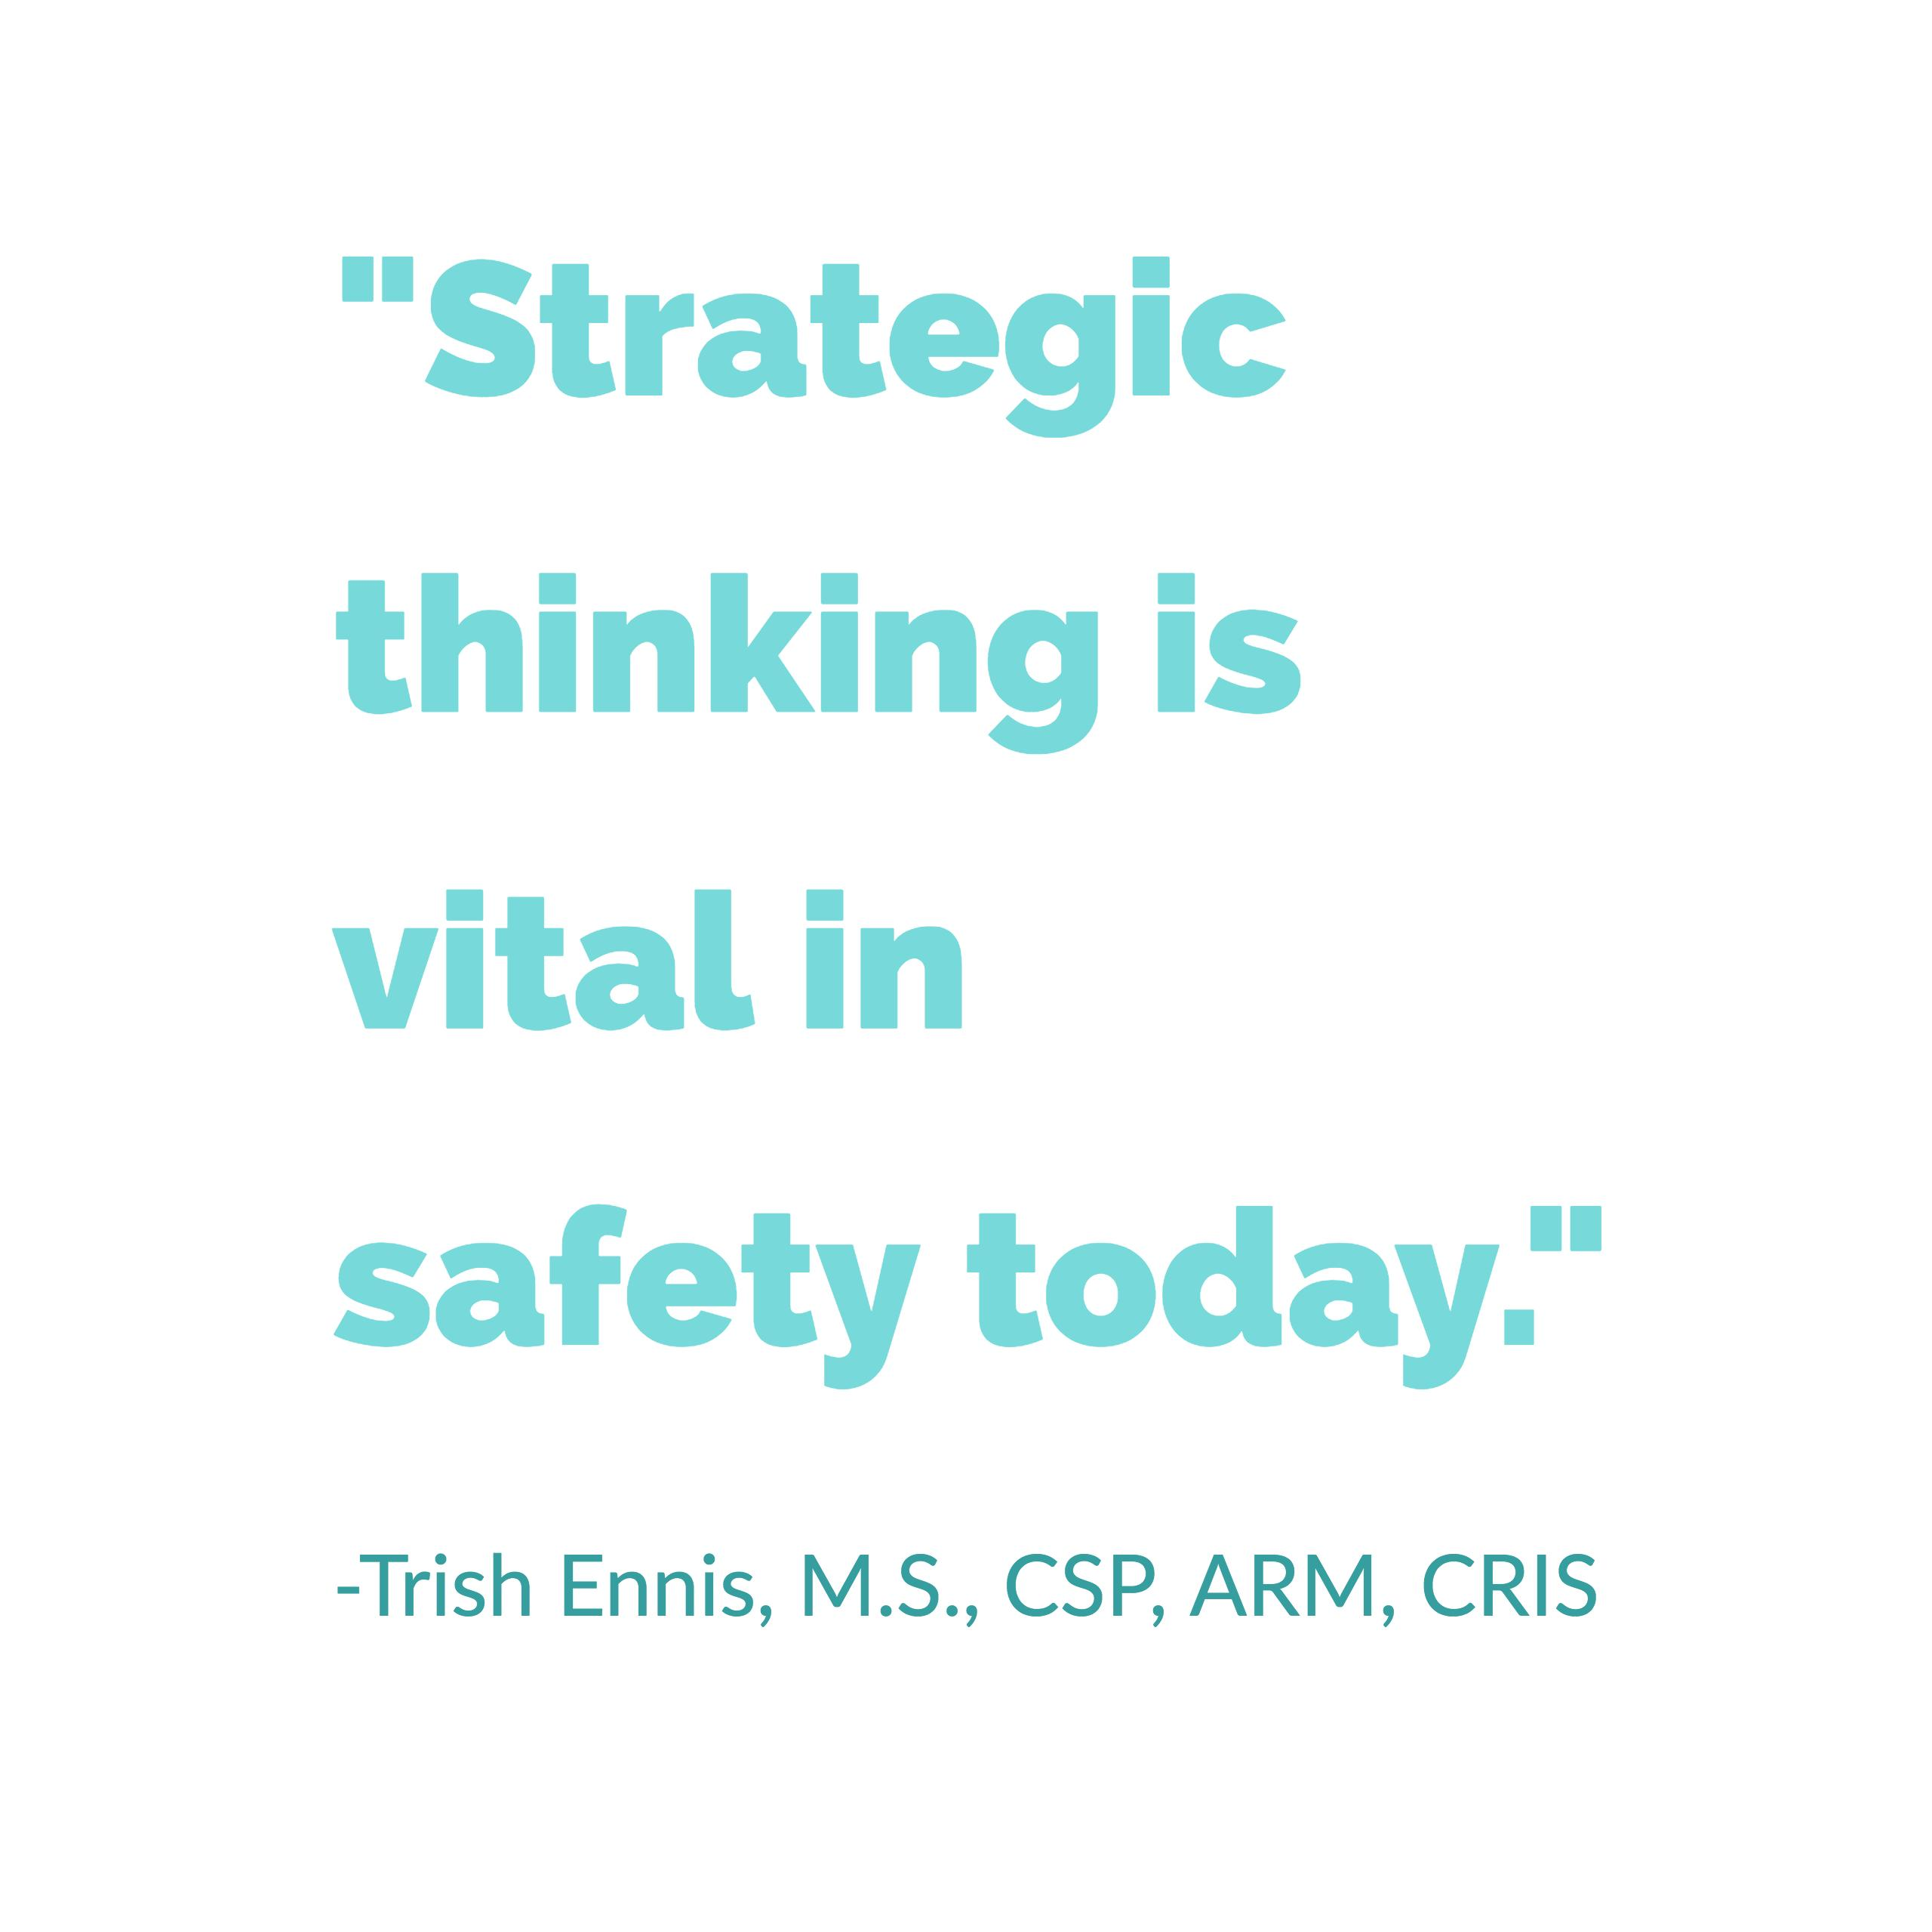 Strategic thinking is vital in safety today